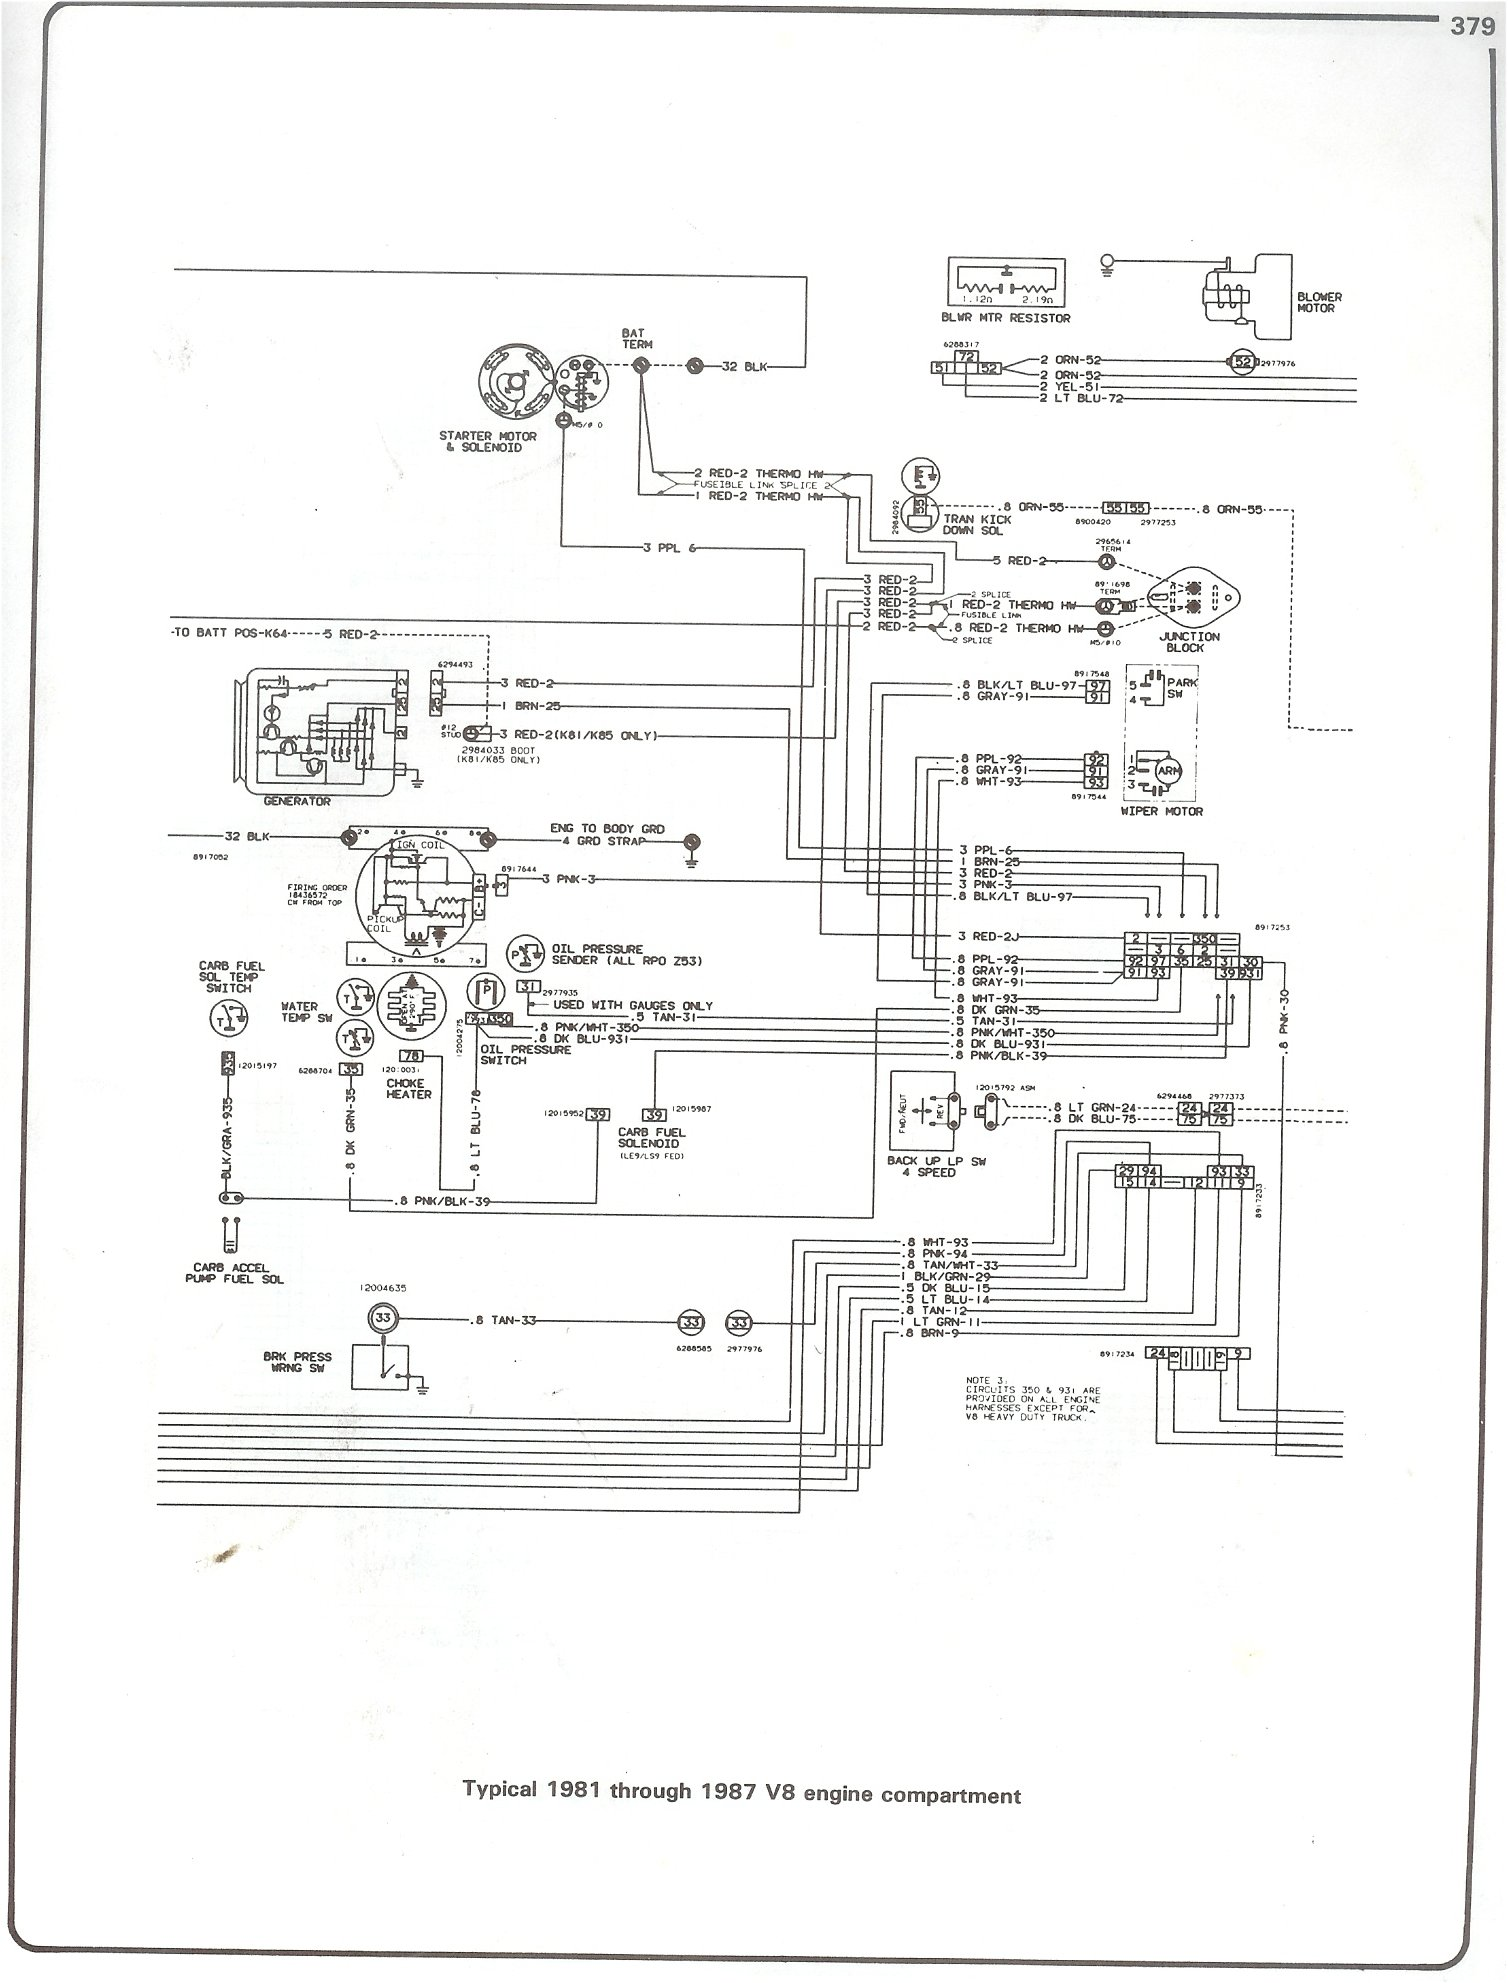 81 87_V8_engine complete 73 87 wiring diagrams 1986 chevy c10 fuse box diagram at n-0.co